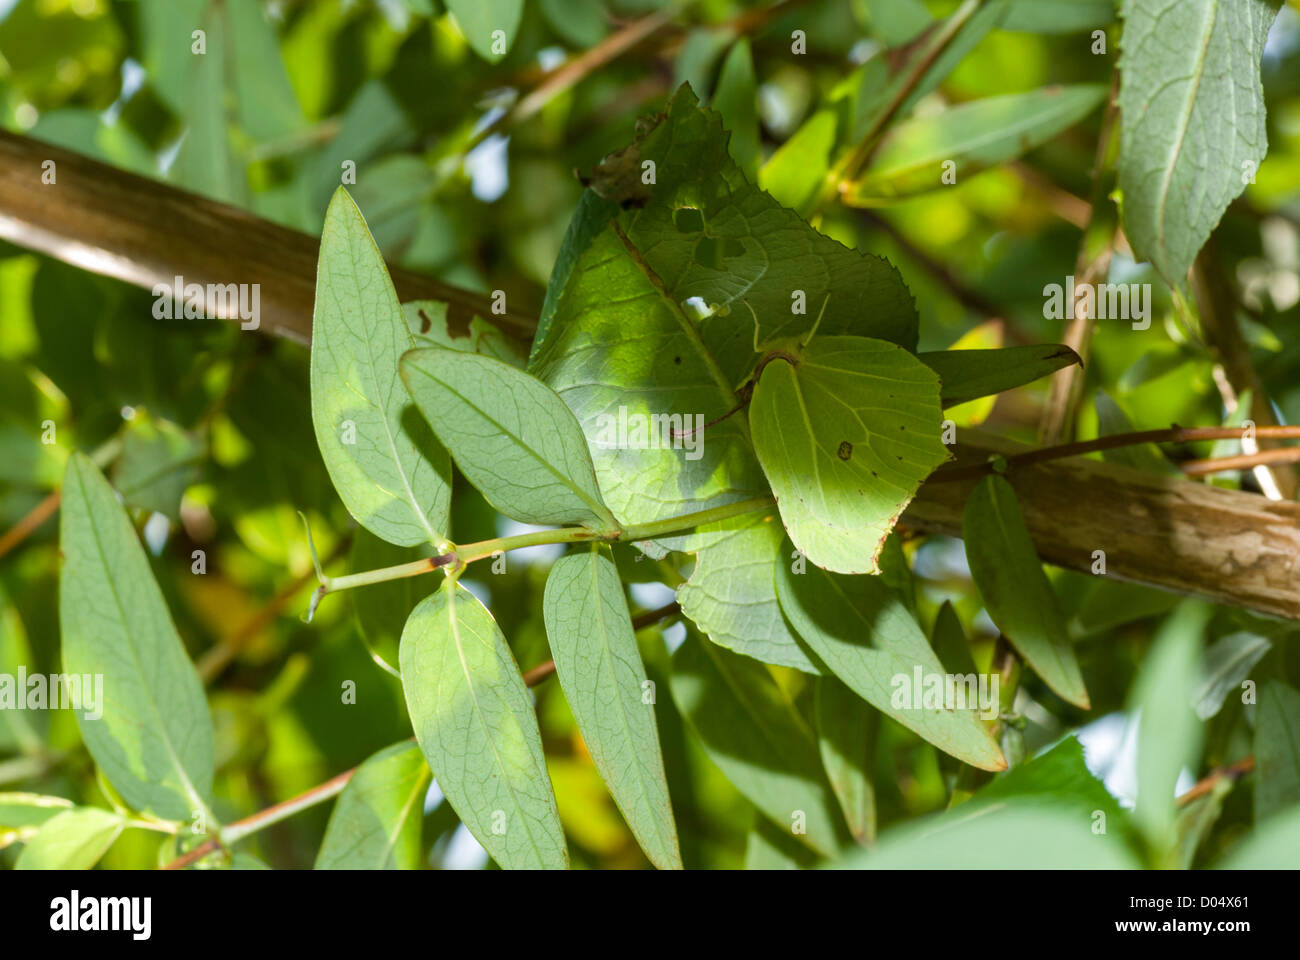 Brimstone Butterfly, Gonepteryx rhamni, resting amongst a tangle of Buddleia and Rose of Sharon leaves - nicely - Stock Image